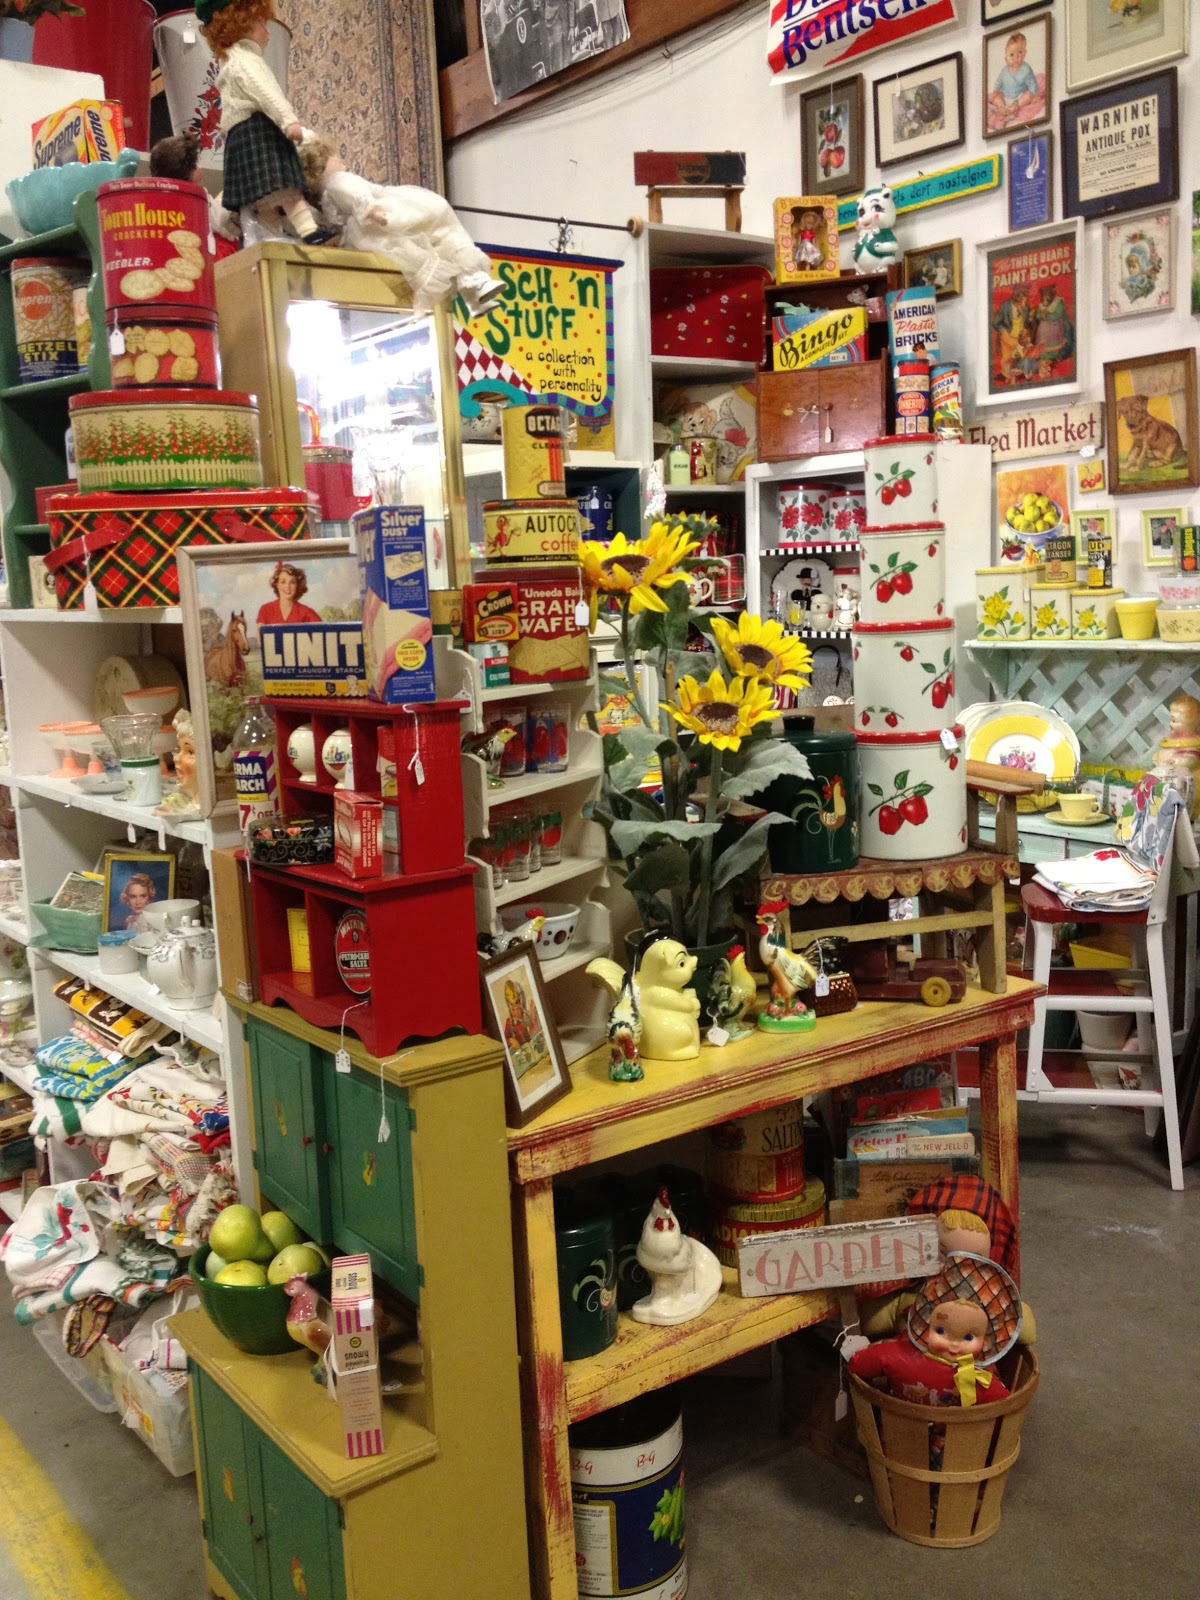 c dianne zweig kitsch n stuff what you need to consider when tuesday october 30 2012